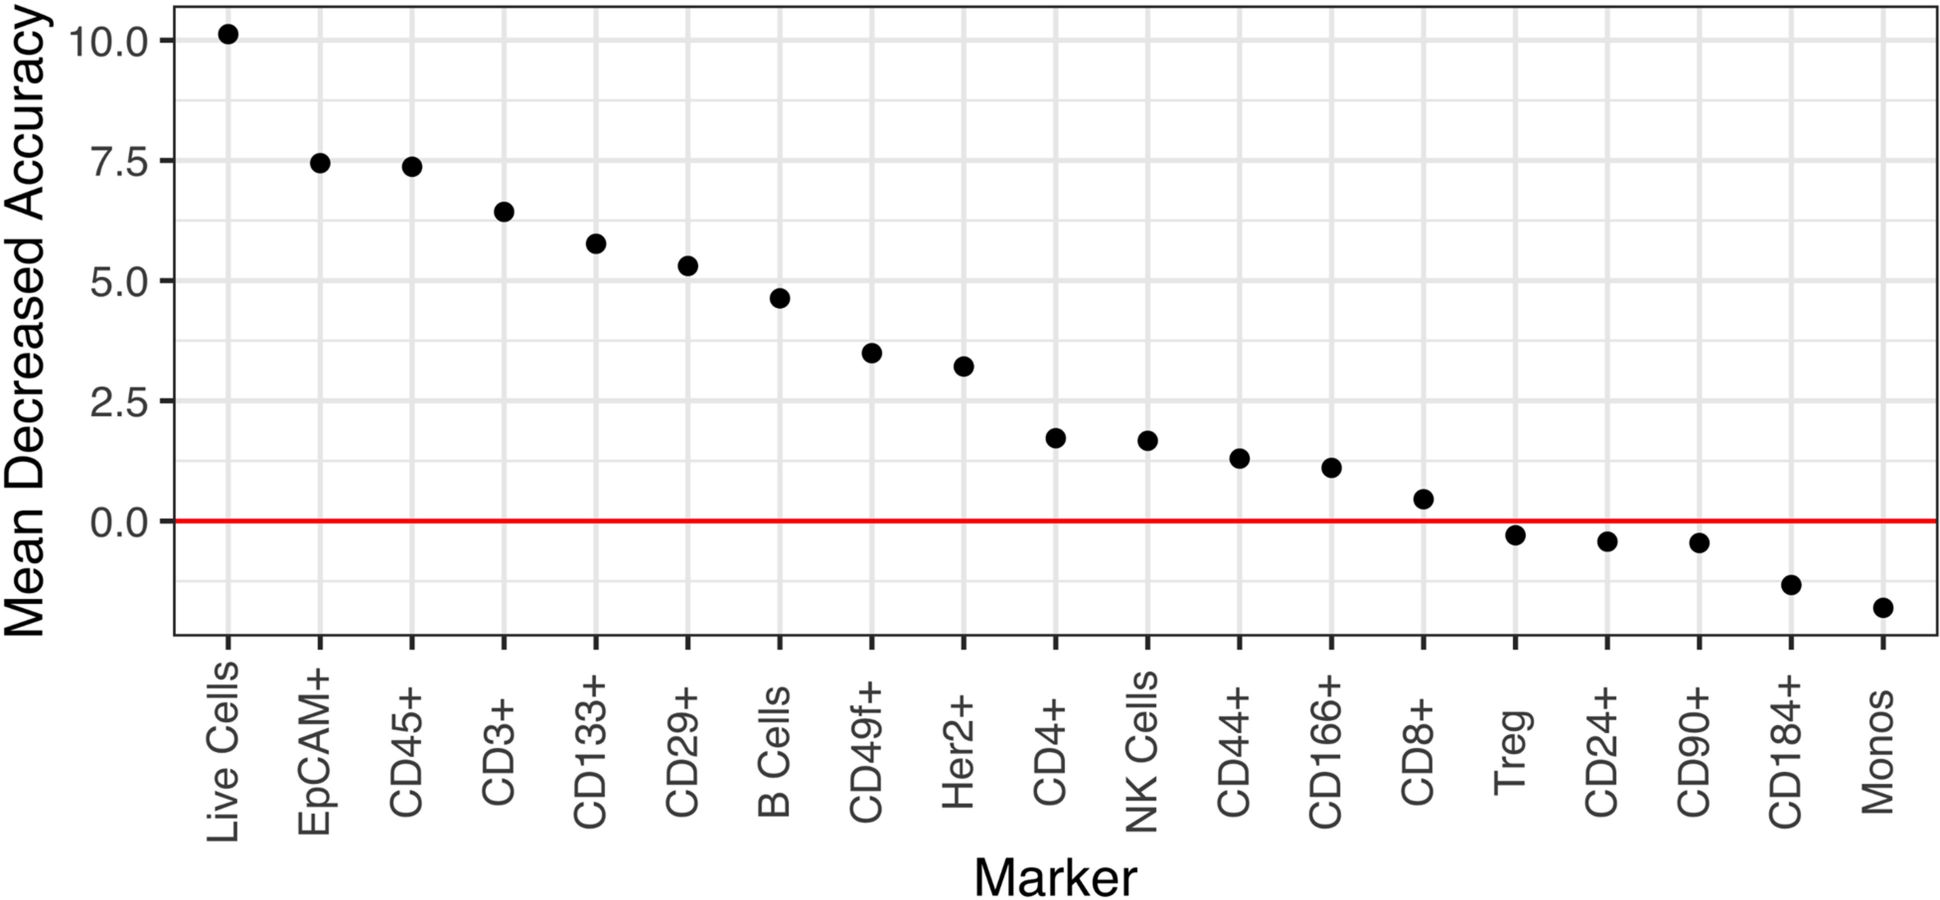 Marker importance as measured by the mean decrease in accuracy for each biomarker in a random forest model.